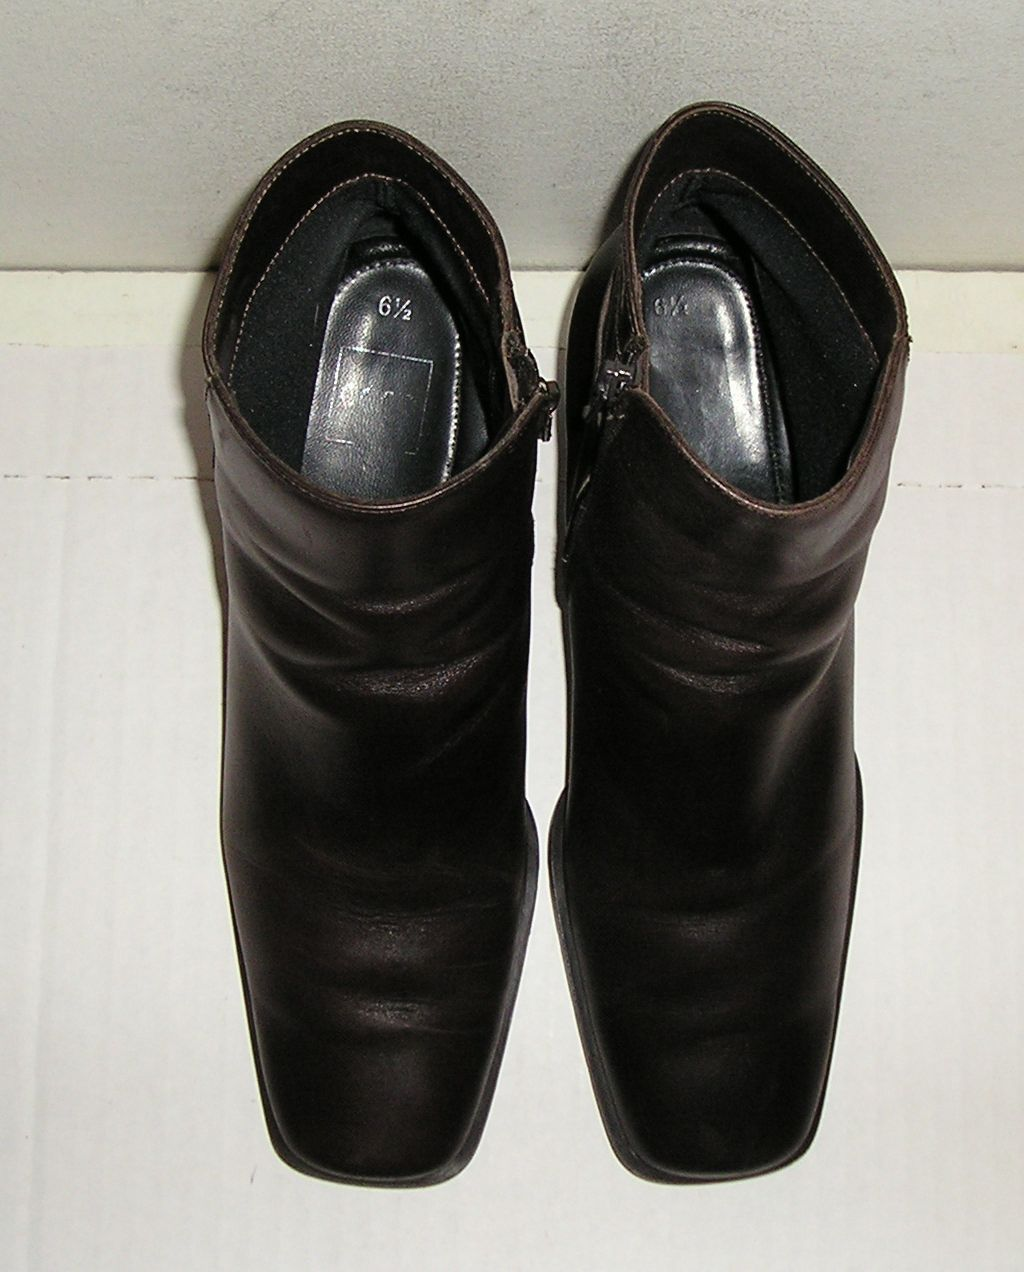 ECCO Women's Italian Brown Leather Ankle Dress Boots Shoes 6.5 UK / 8.5 - 9 US